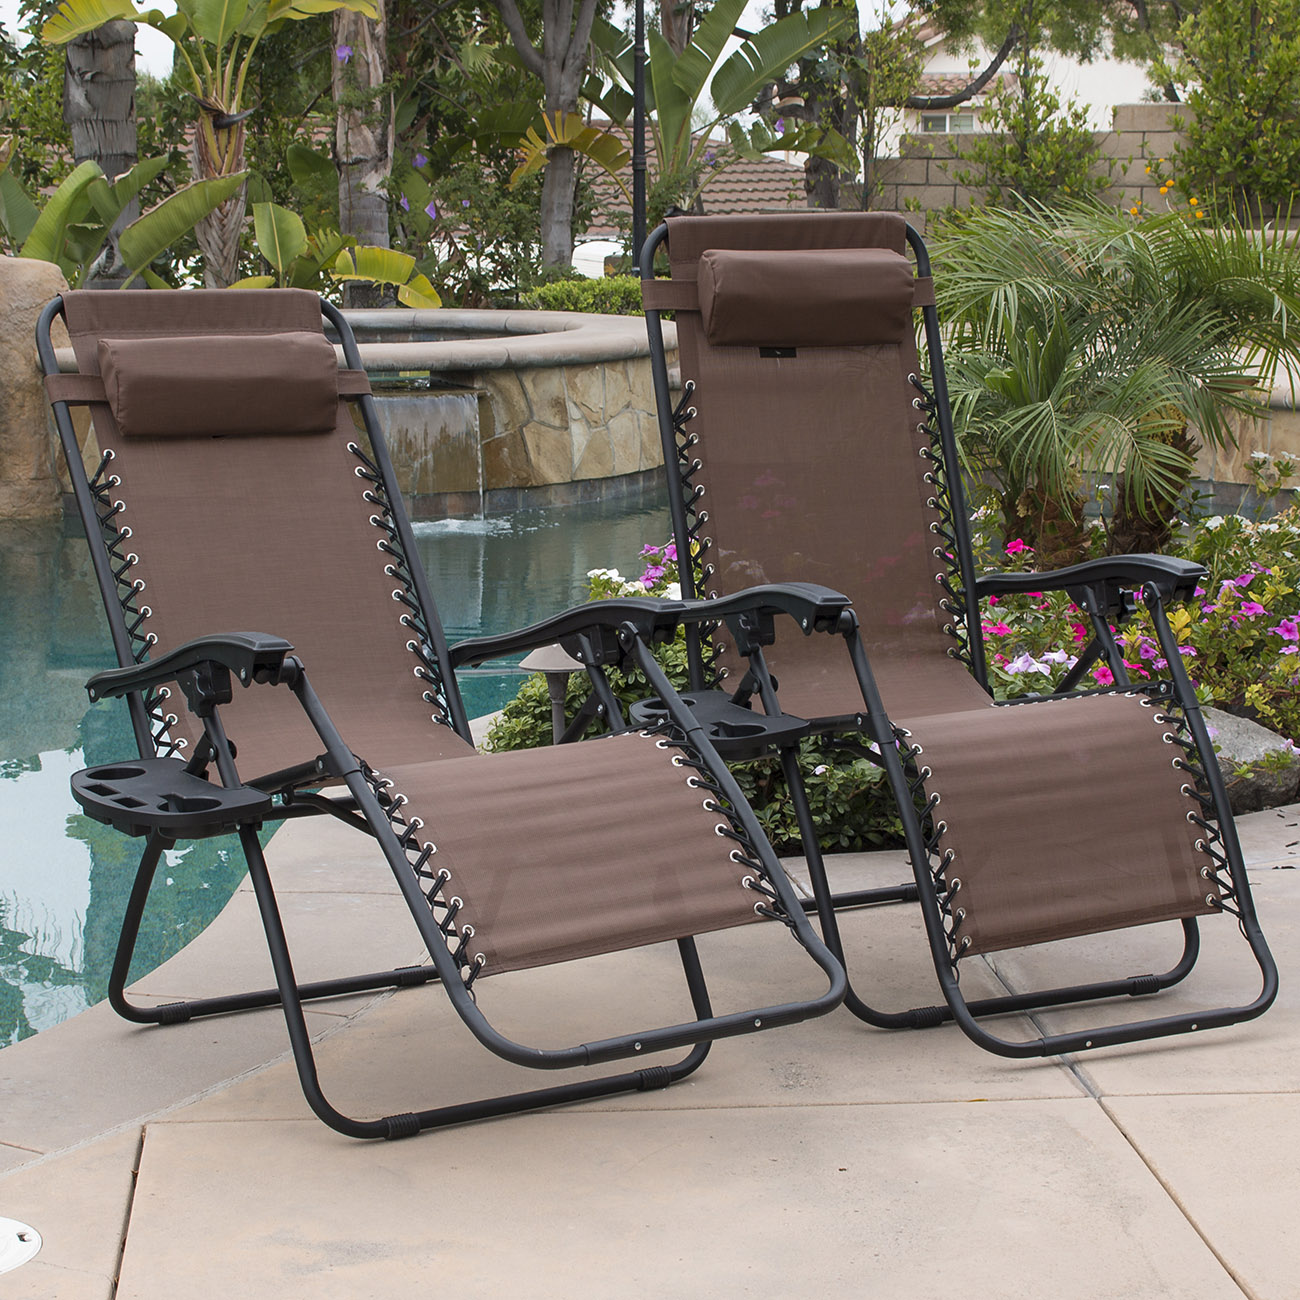 Lawn Chair 40 Oz: 2PC Brown Zero Gravity Lounge Chairs Recliner Outdoor